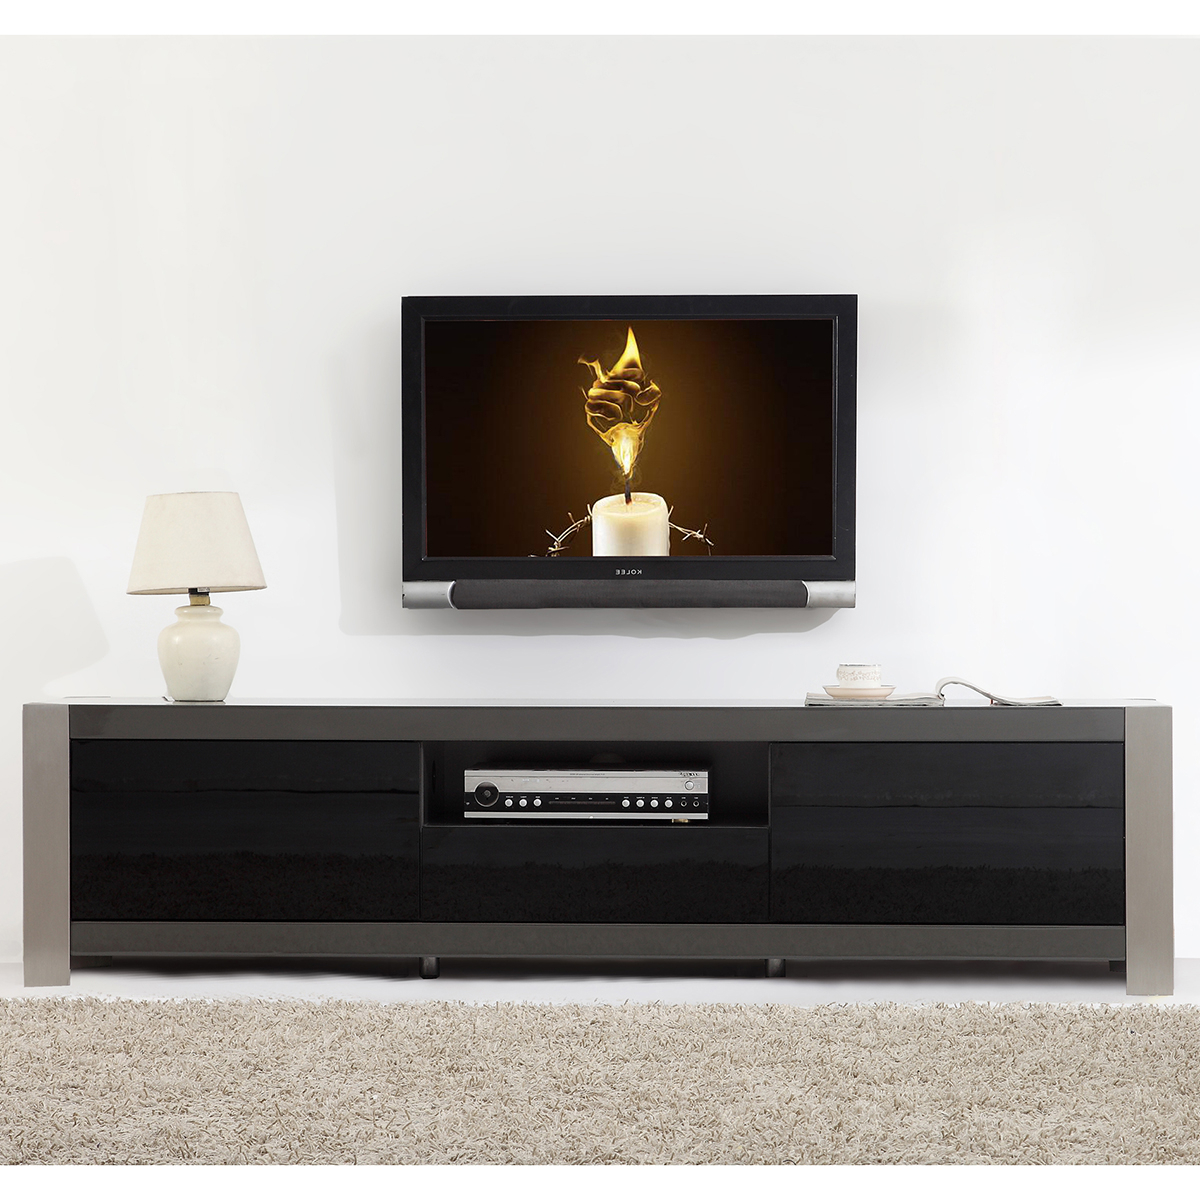 Most Recent Tv Television Stands 71 & Wider Pertaining To Noah 75 Inch Tv Stands (View 8 of 20)